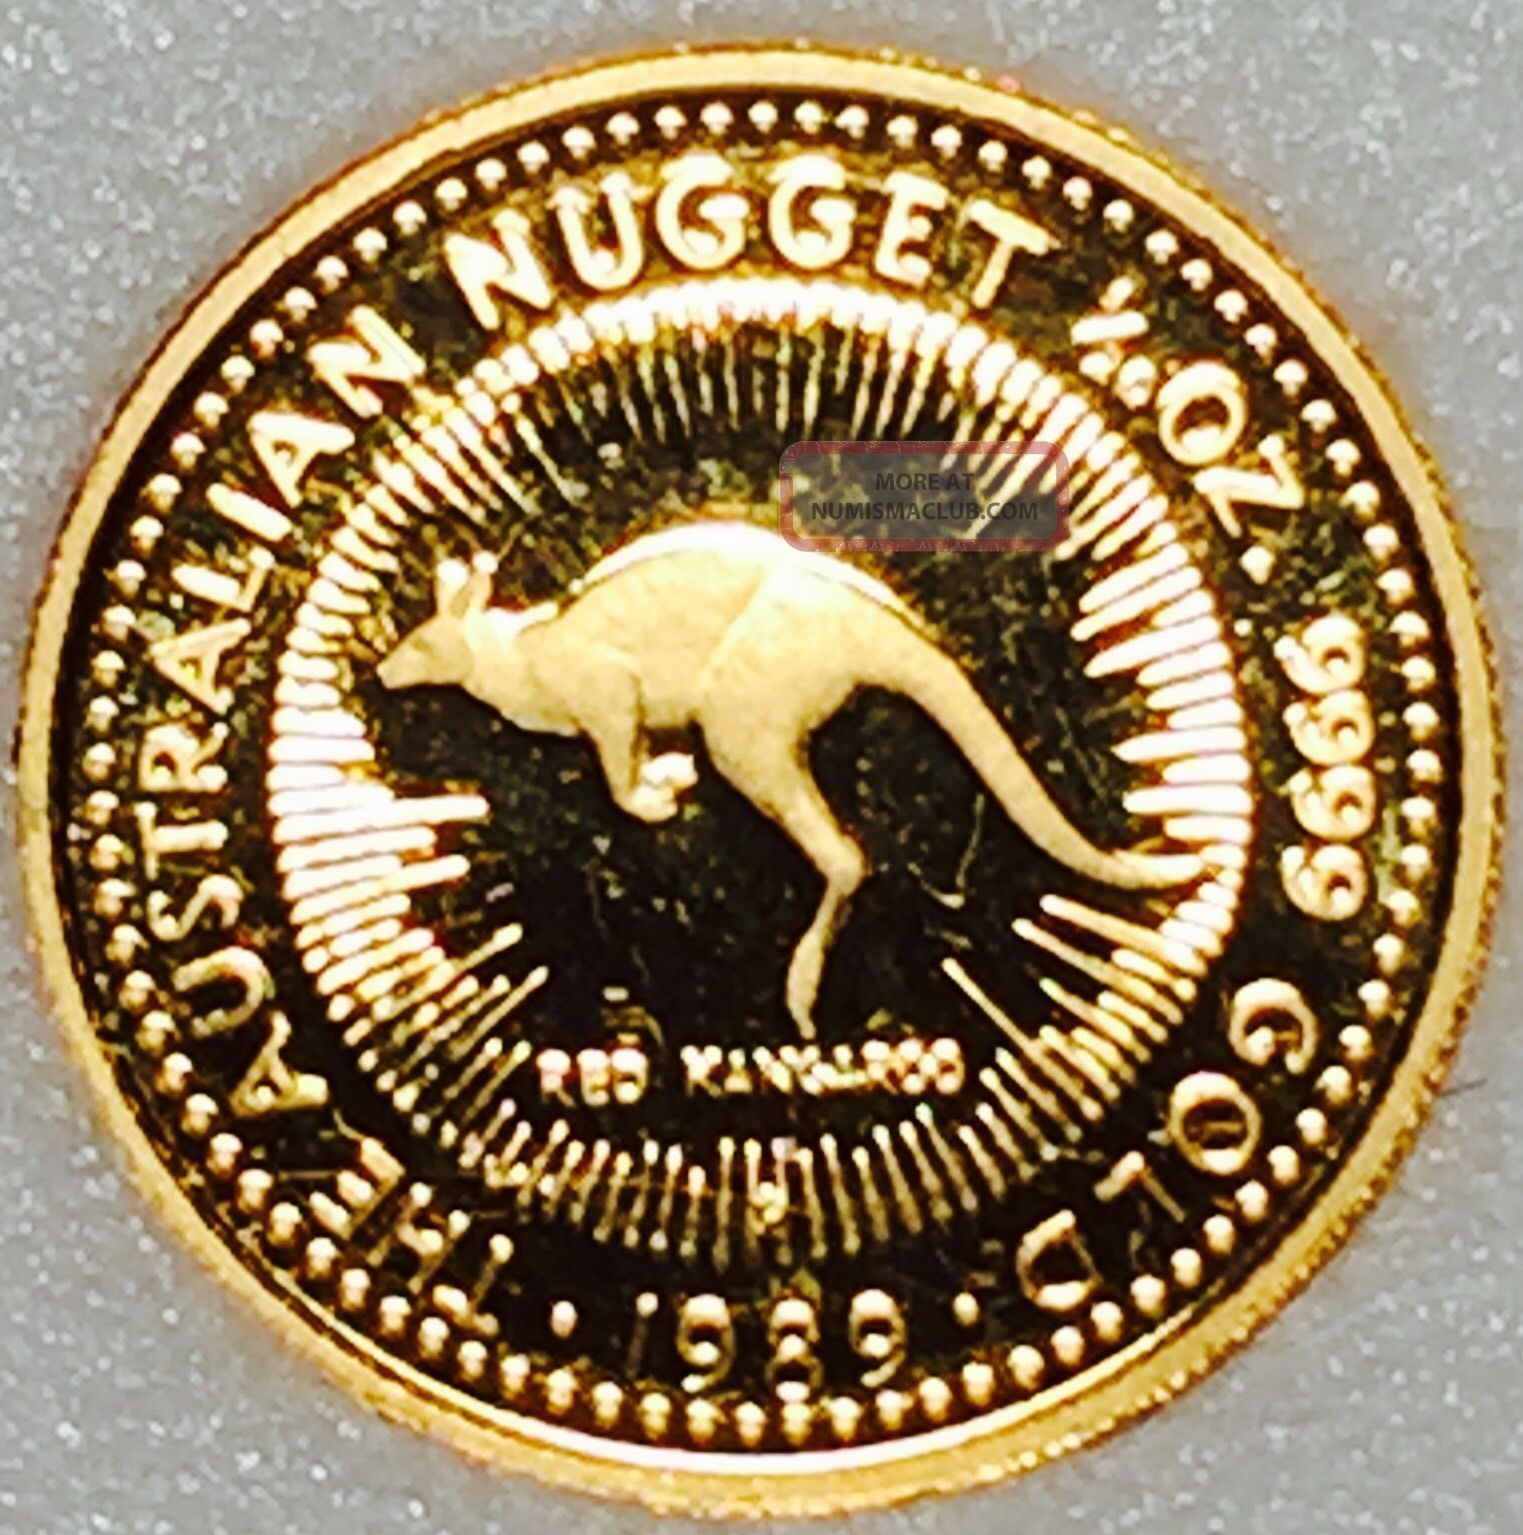 1989 Australia Nugget Proof 1 20 Ounce 9999 Gold With Red